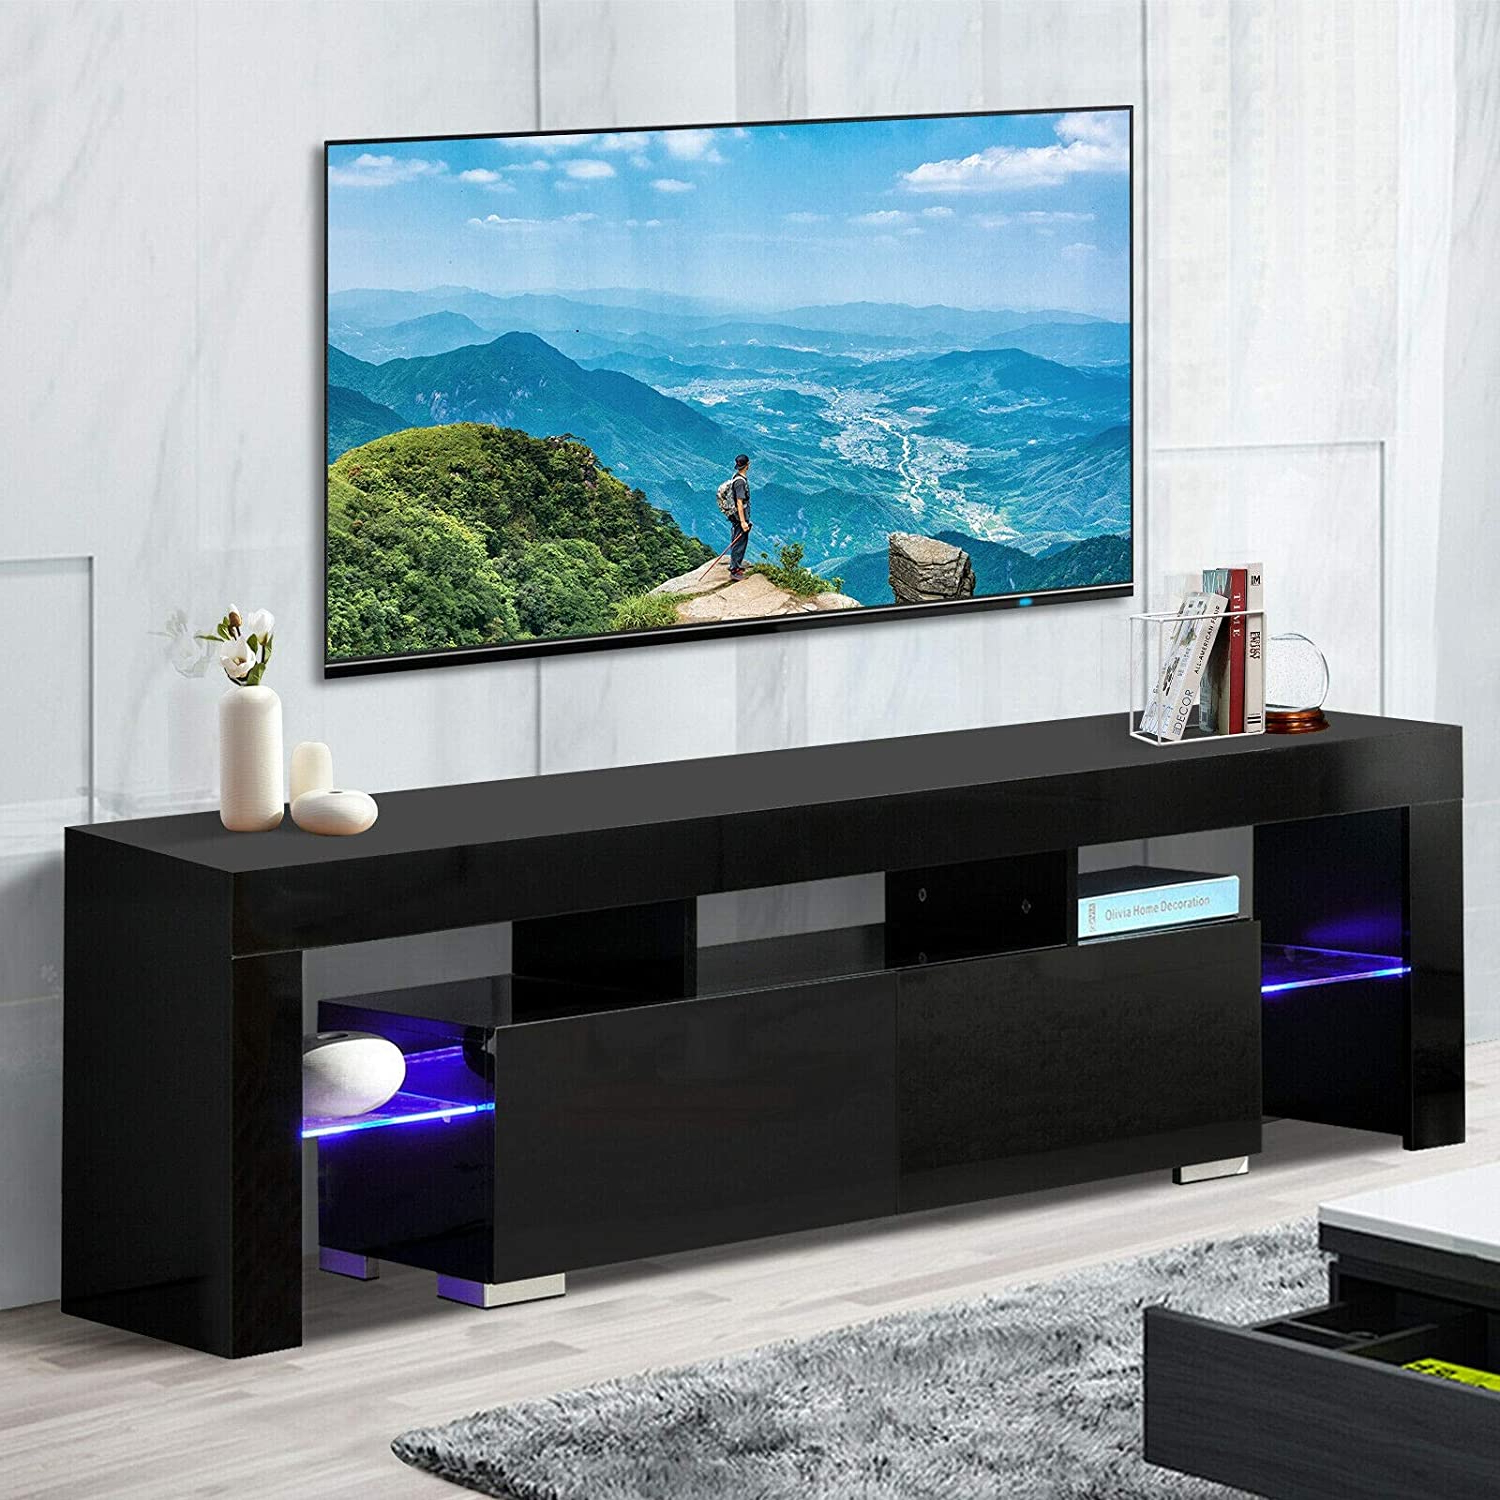 Amazon: Tv Stand Elegant Black High Gloss Led Light Throughout Most Recent Ktaxon Modern High Gloss Tv Stands With Led Drawer And Shelves (View 10 of 10)